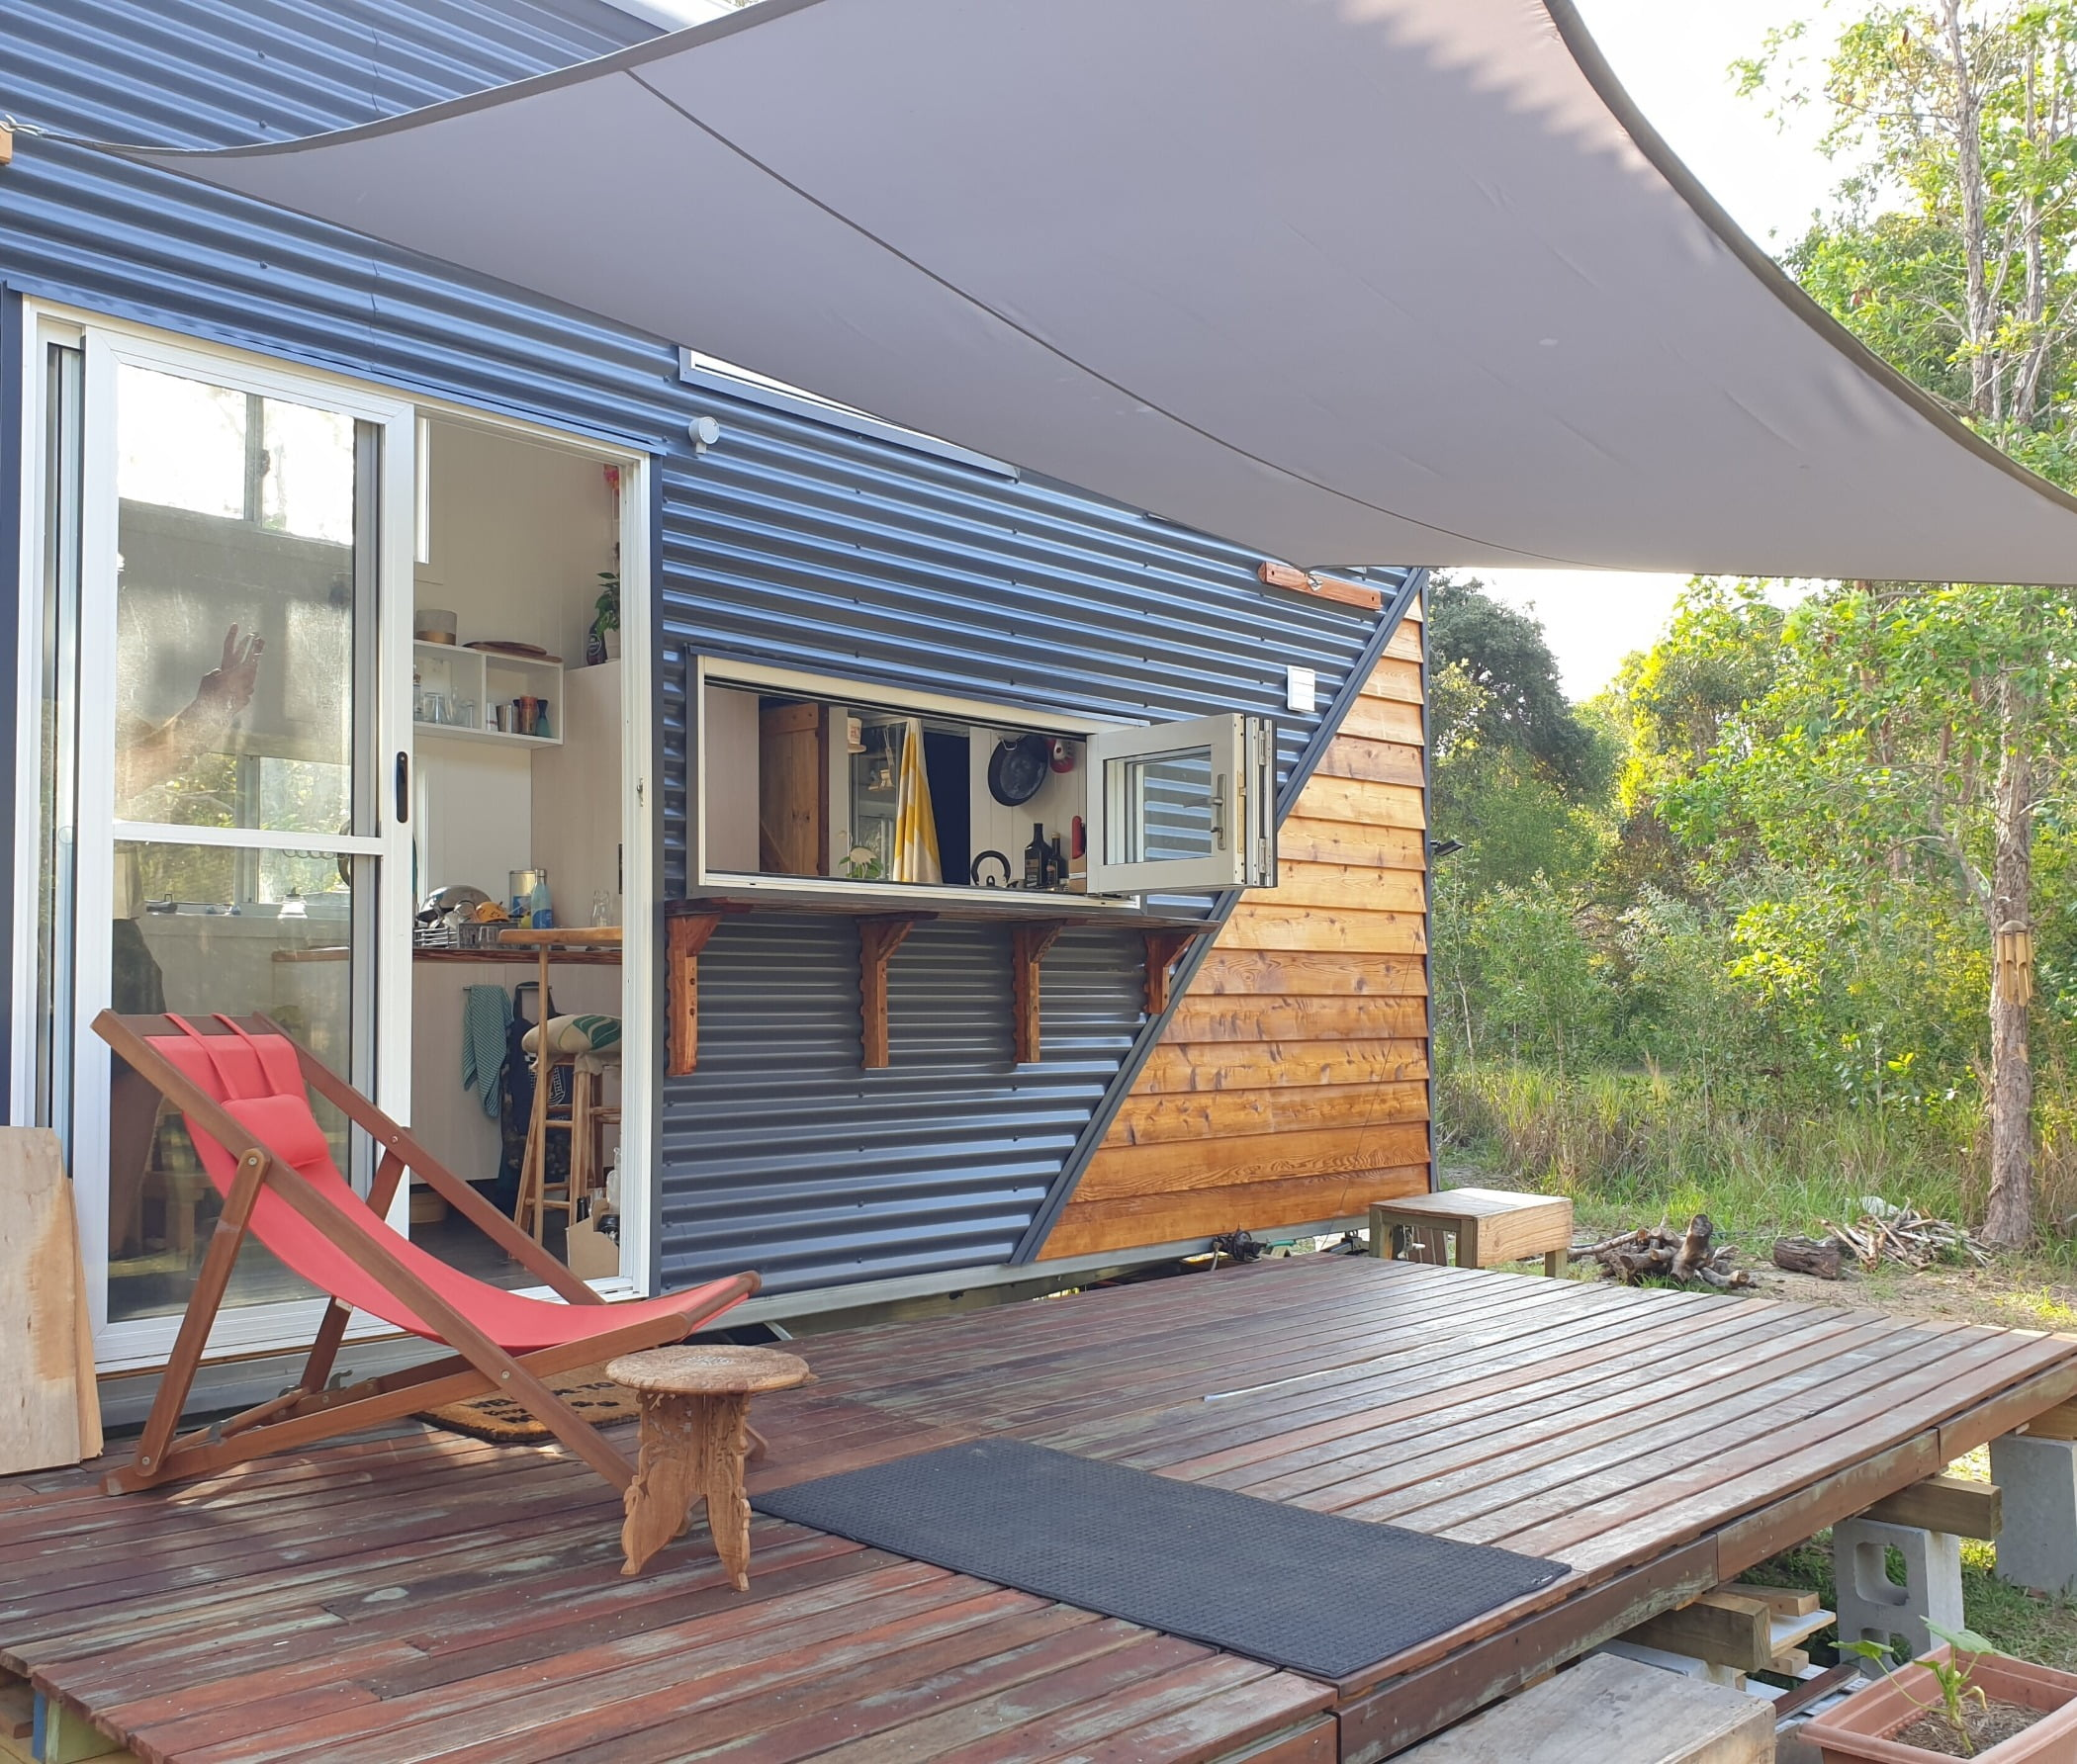 Outdoor furniture, Property, Wood, Shade, Window, Building, Architecture, Leisure